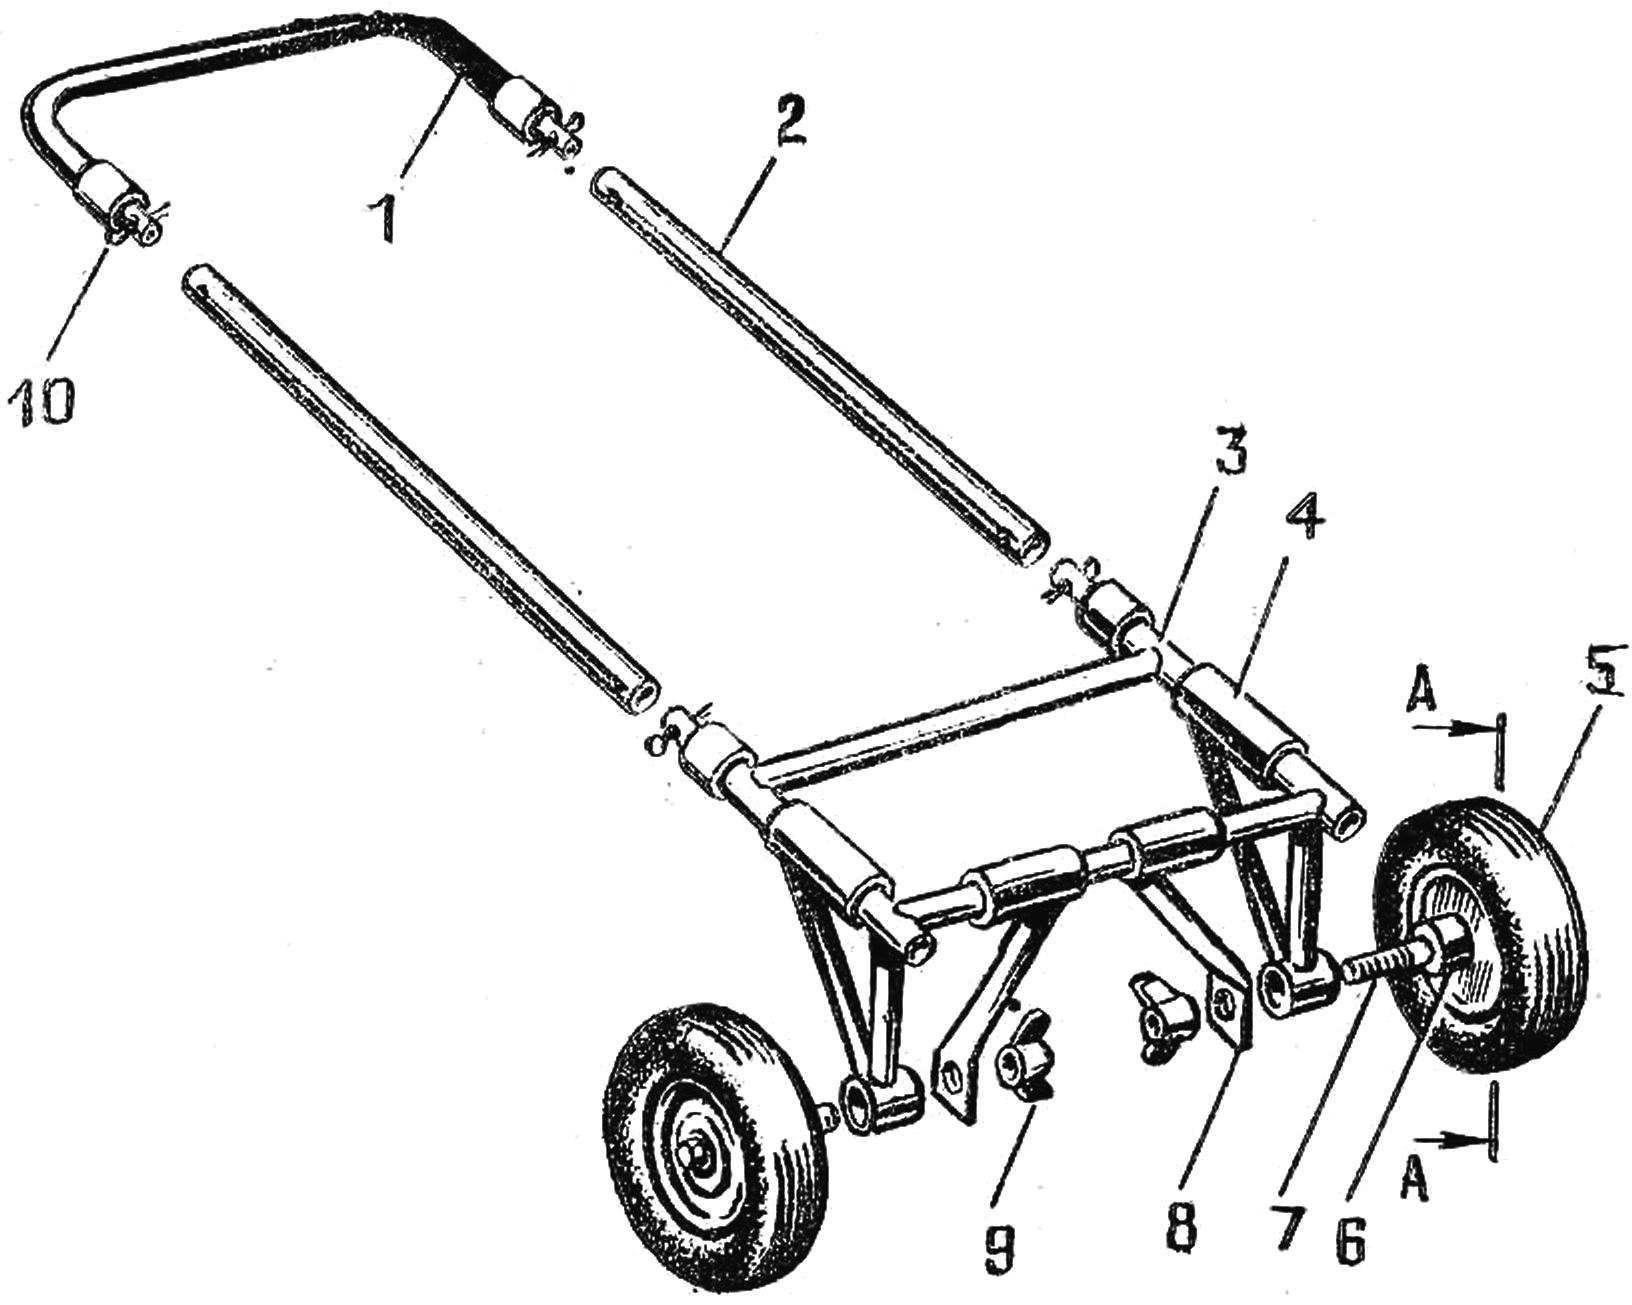 Fig. 2. Collapsible cart for kayaks